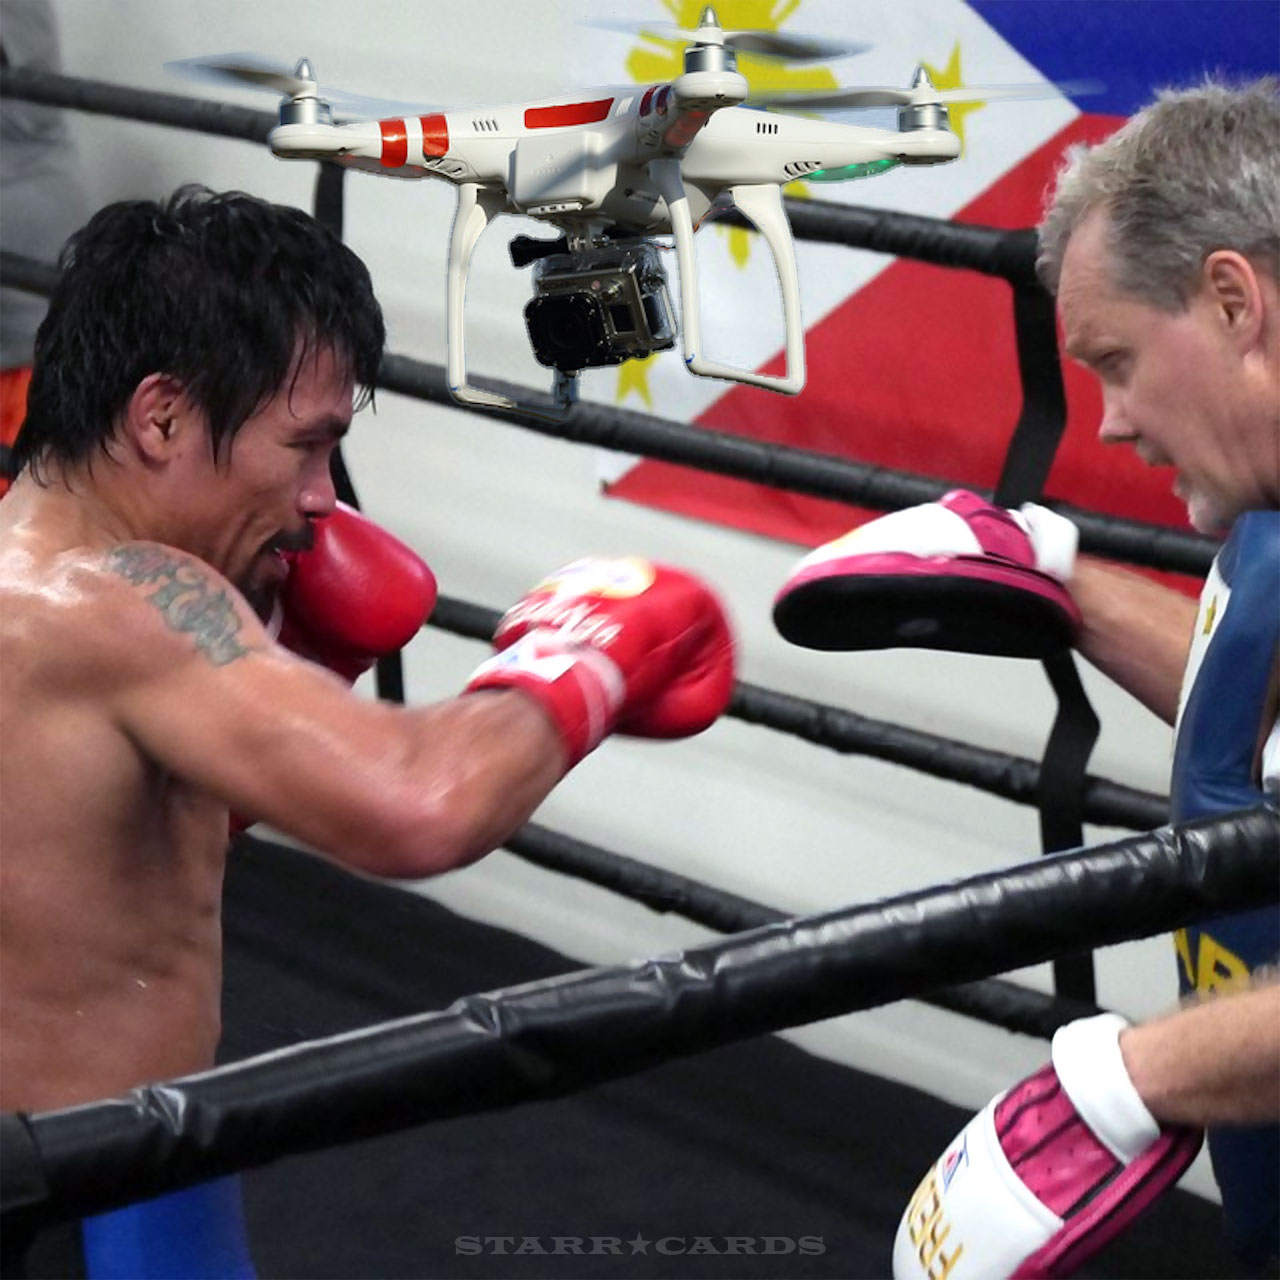 Manny Pacquiao's training camp buzzed by drone